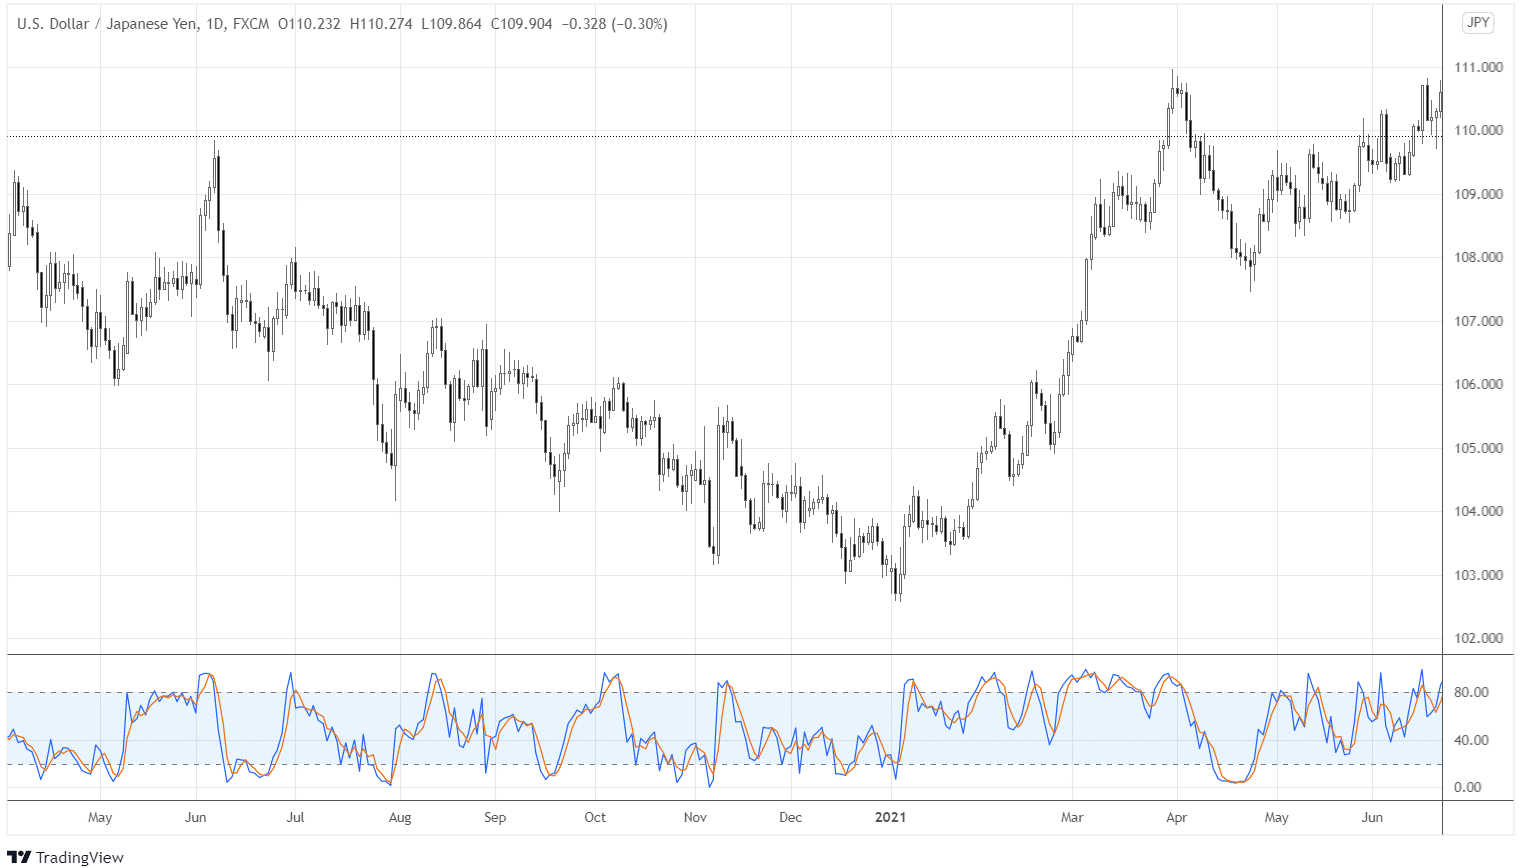 Stochastic Oscillator that is plotted in the daily chart.